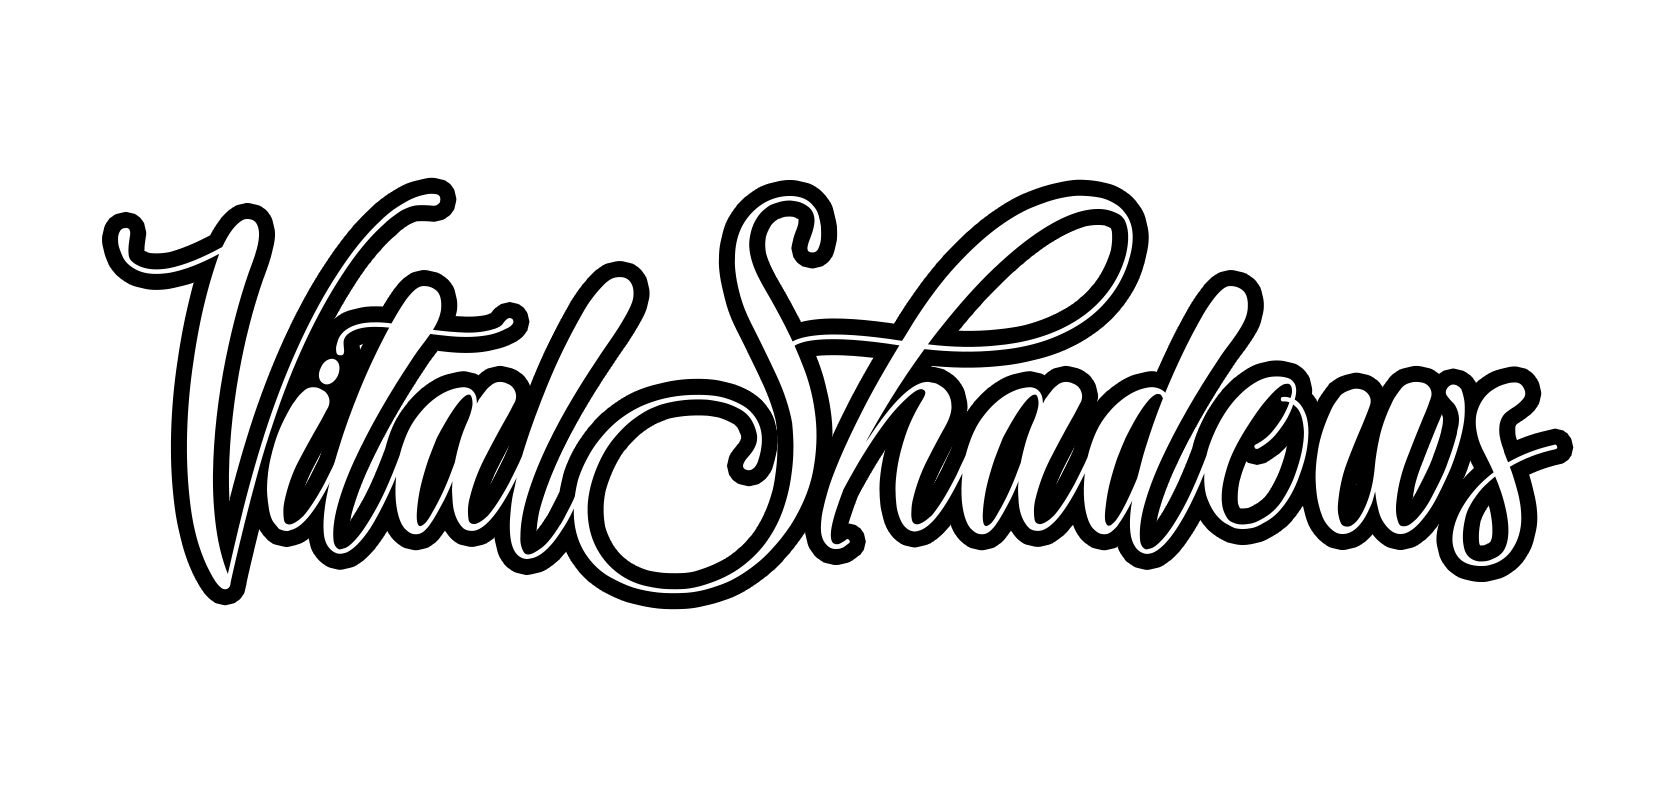 Vital Shadows Beats For Sale - Hip Hop, Rap, Trap, Instrumental